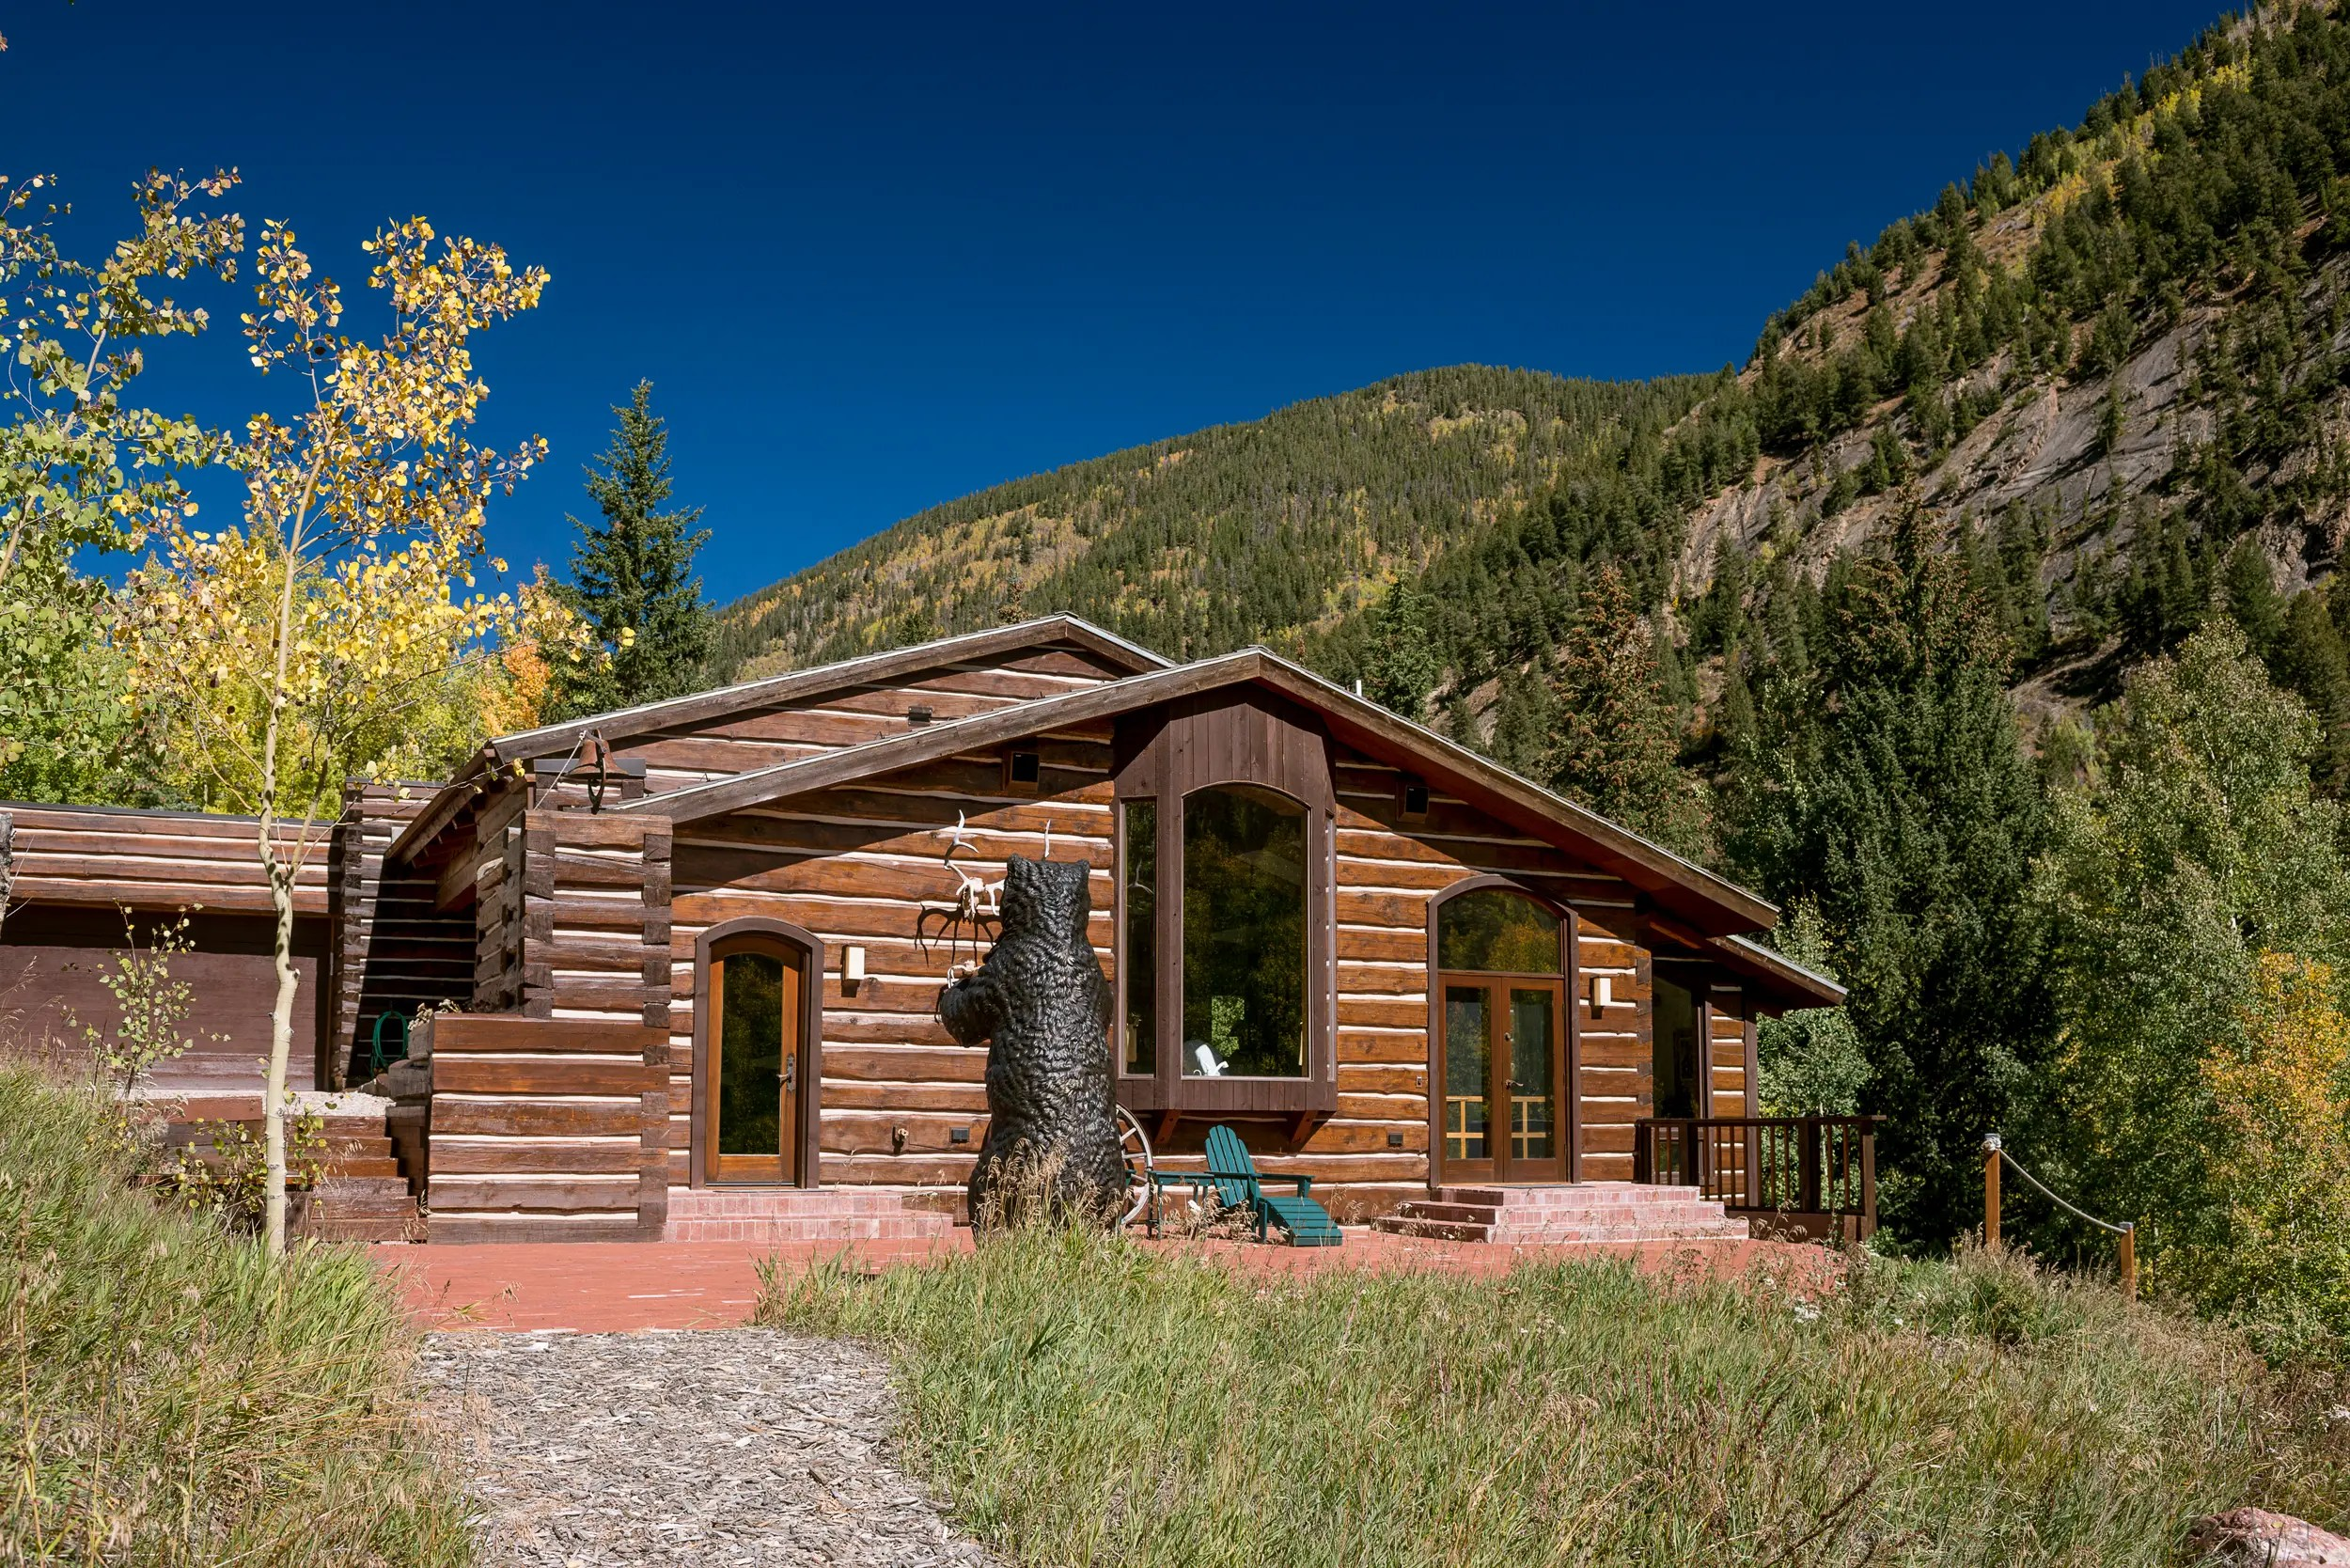 The second parcel, called Ashcroft, is 7.4 acres and available separately for $7.375 million. It's got an outdoor hot tub and a cozy wood-burning stove.